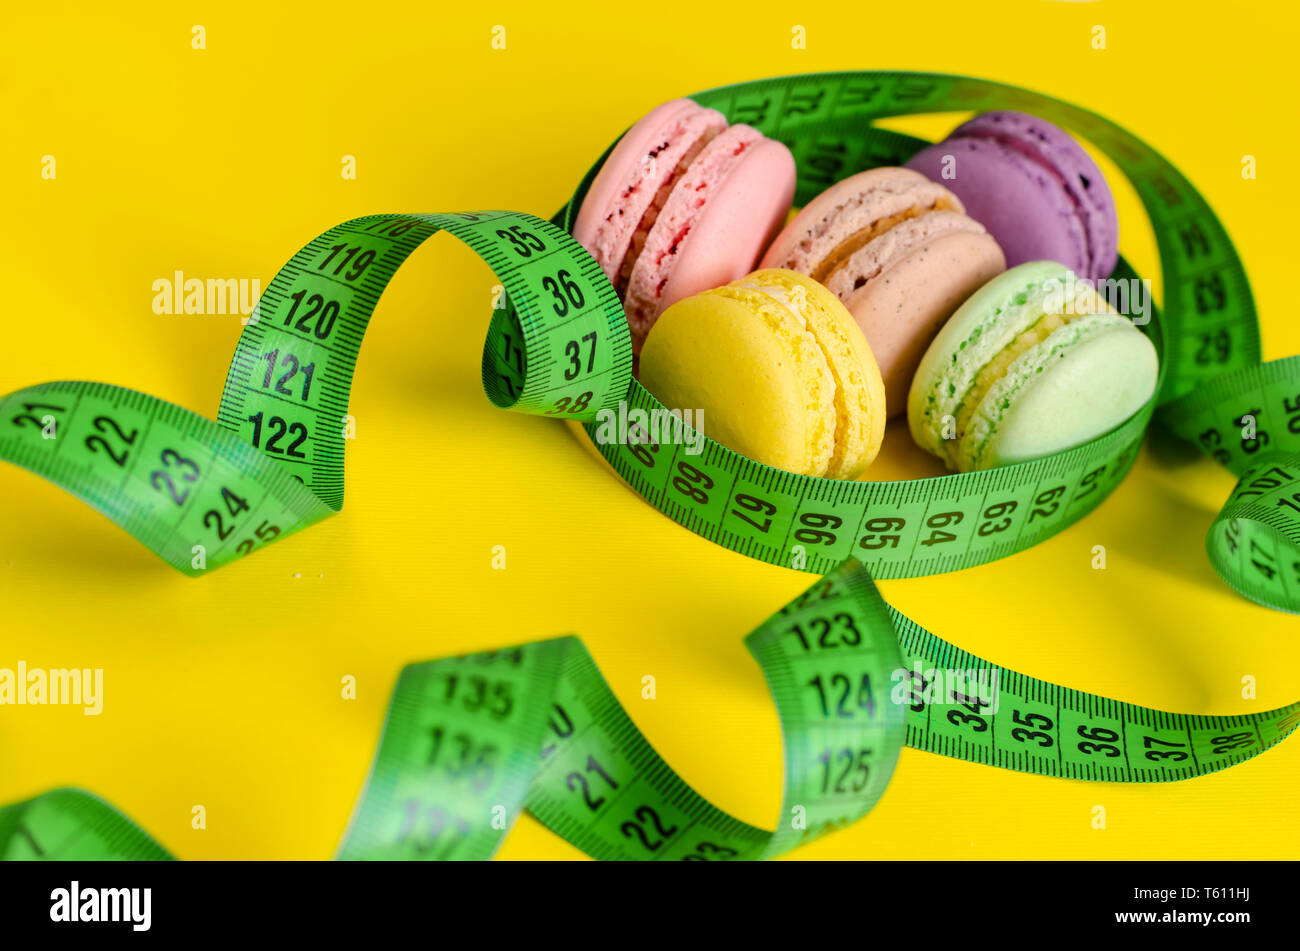 Green measuring tape and macarons or macaroons on yellow background. Weight loss and slimming treatment concept. Top view - Stock Image